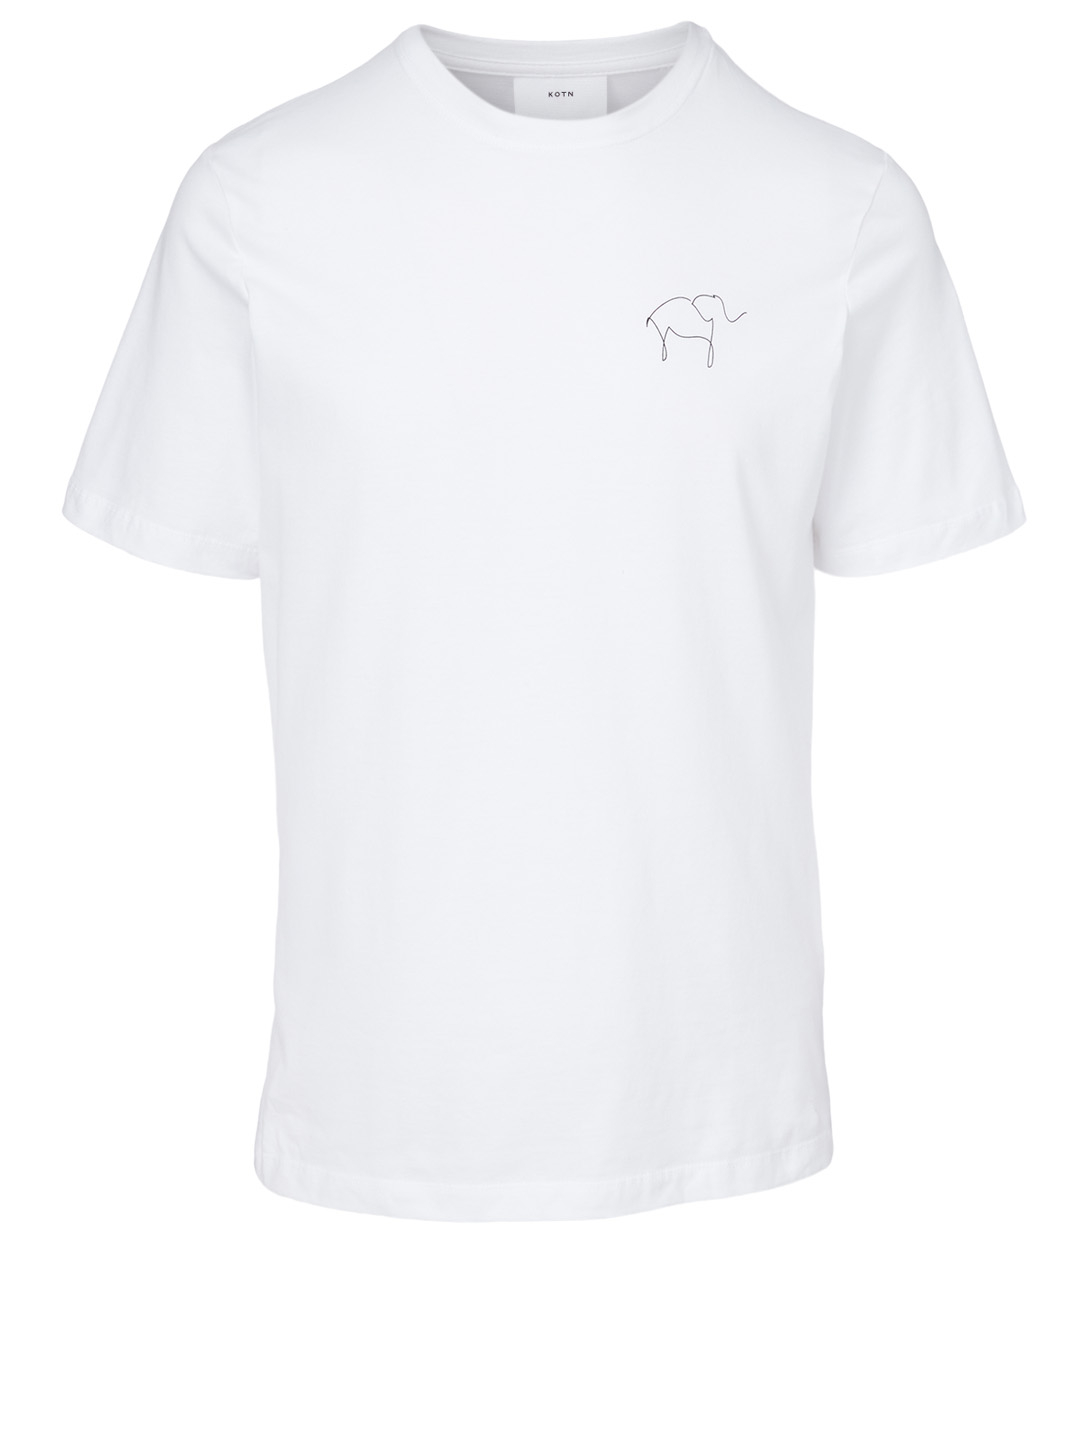 KOTN Knot On My Planet Cotton T-Shirt H Project White